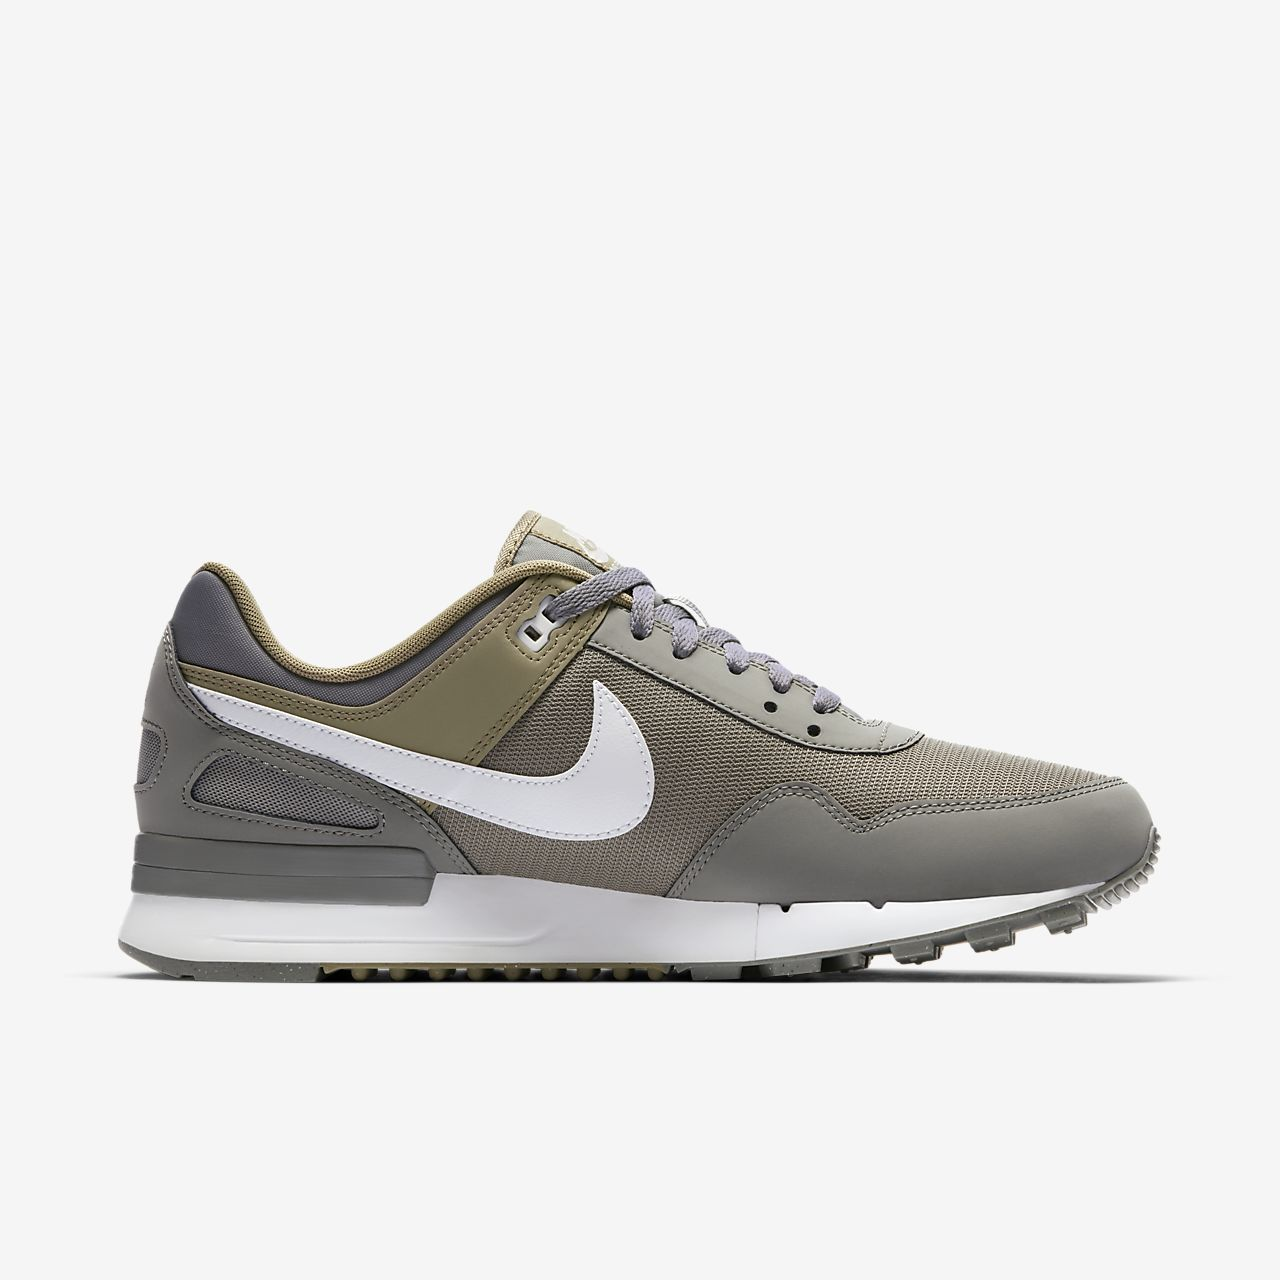 nike pegasus men's shoes nz